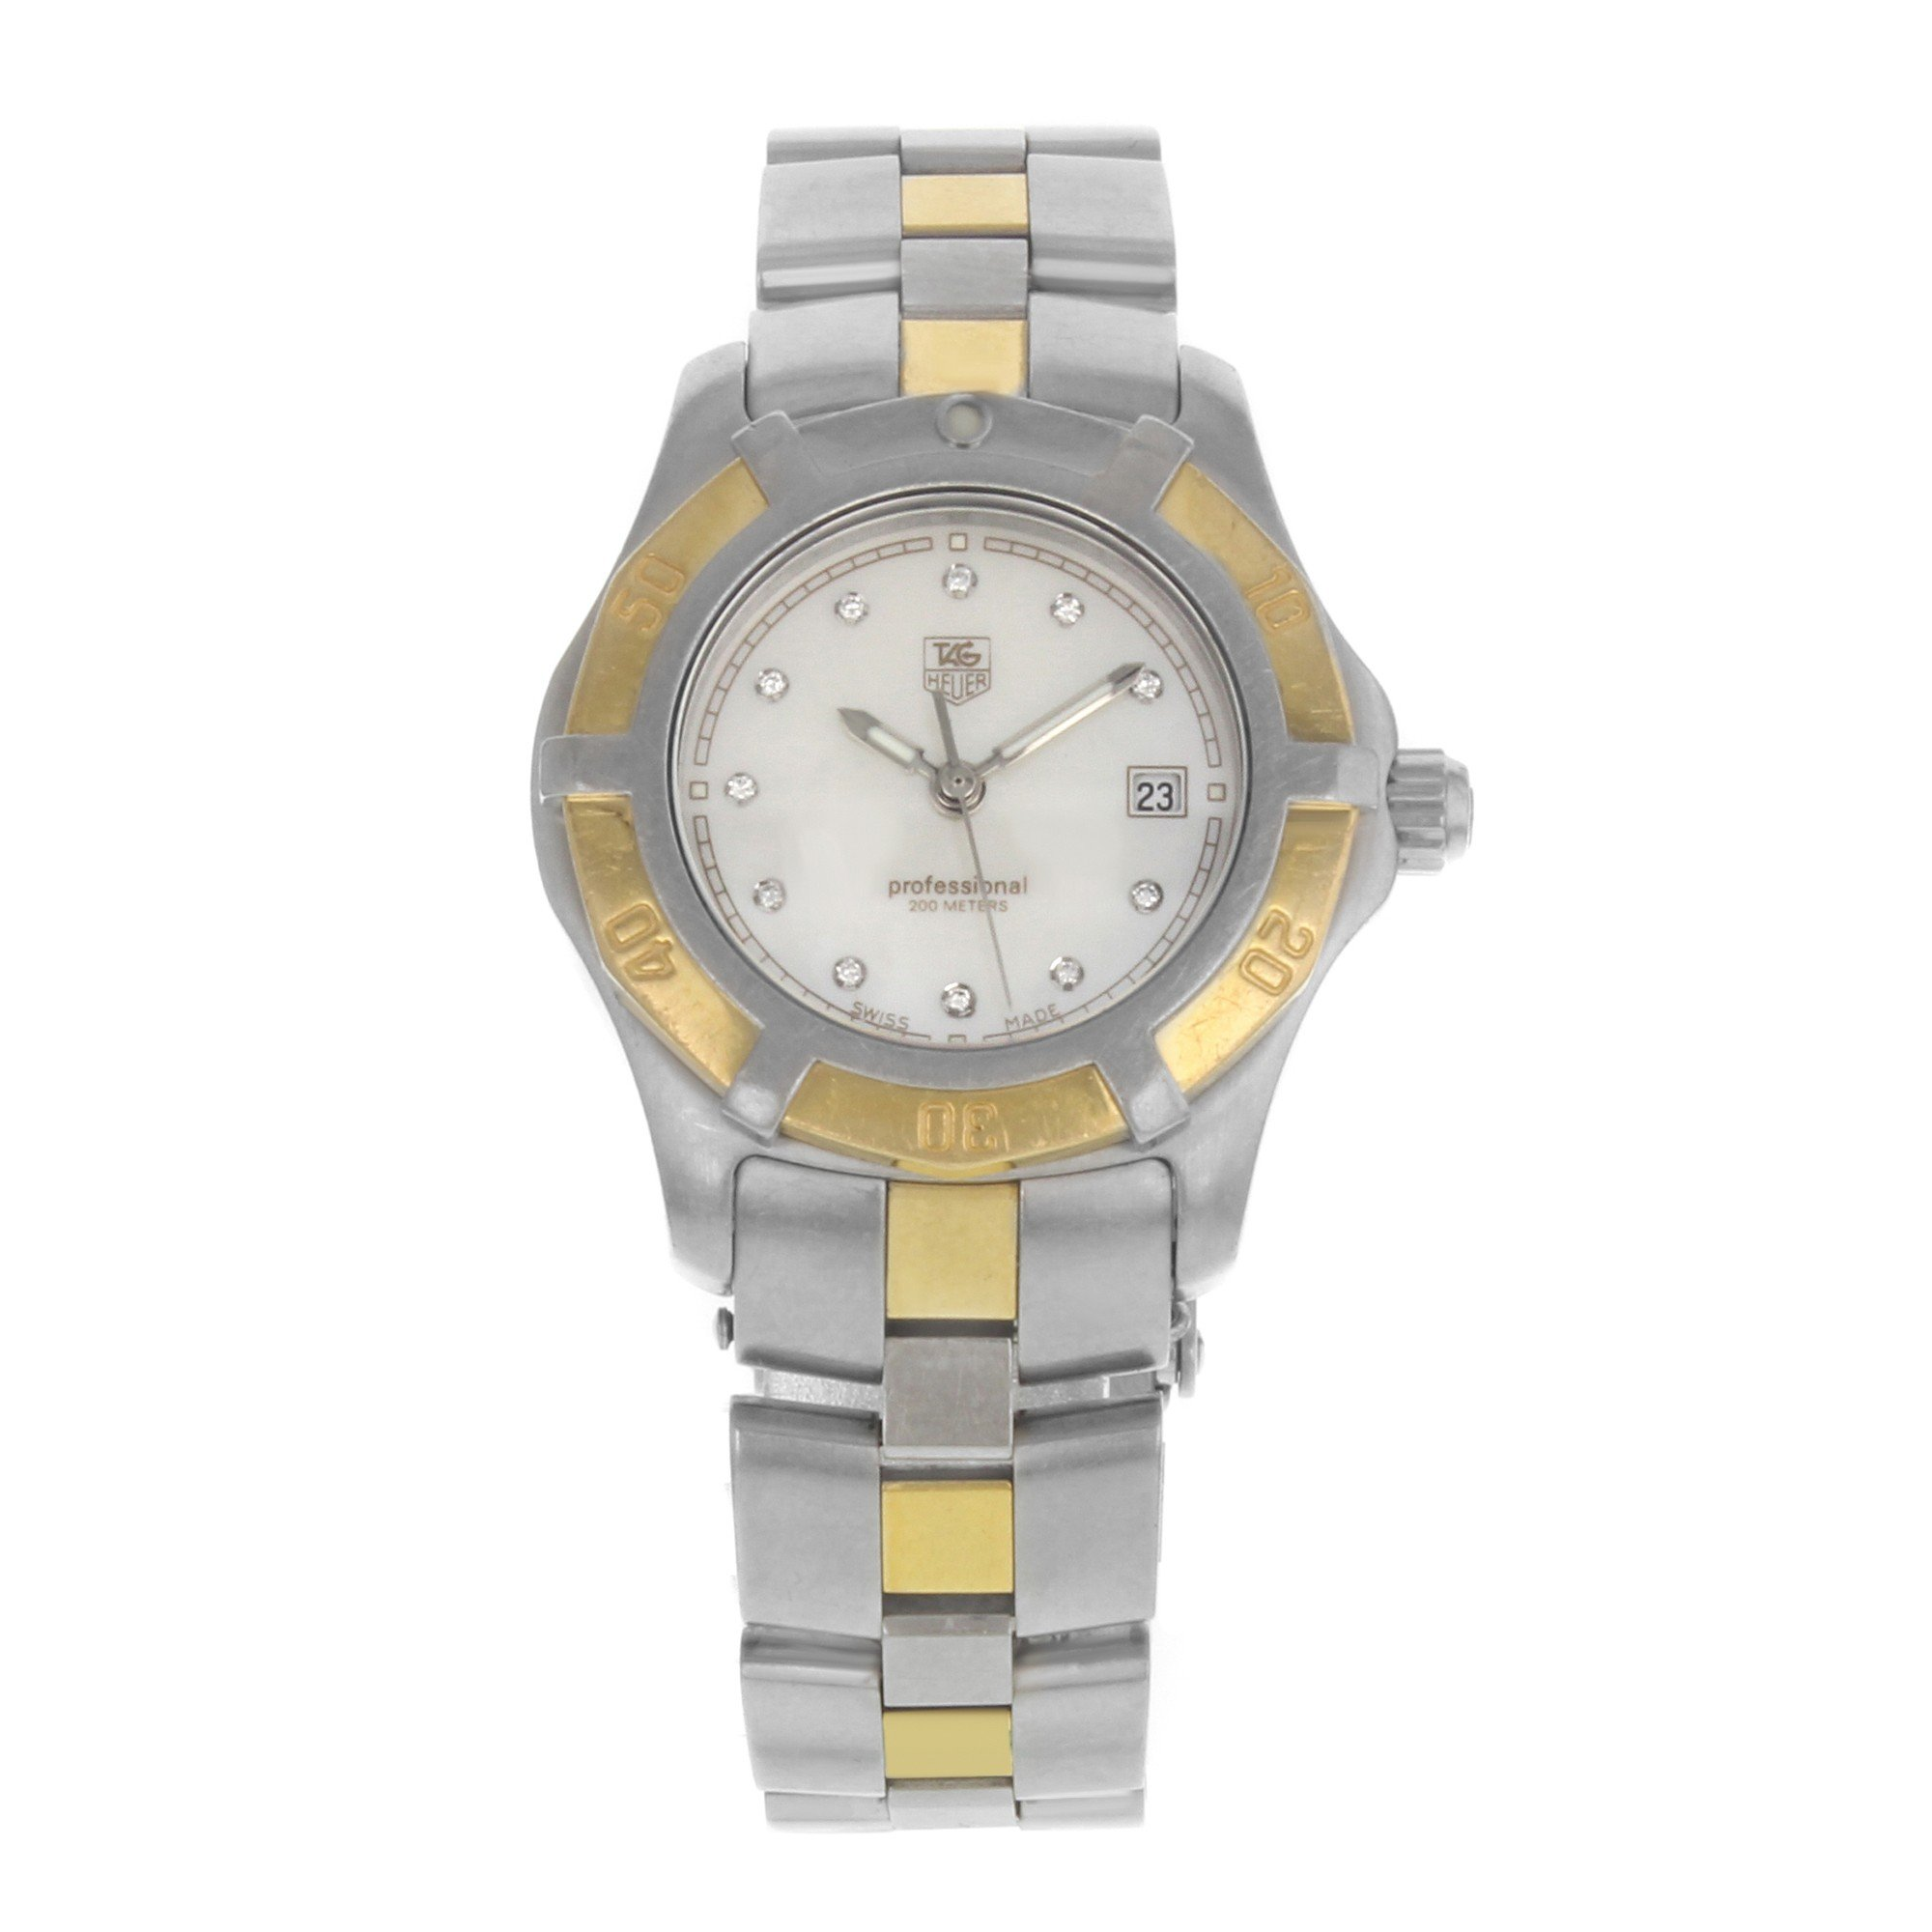 Tag Heuer 2000 Exclusive quartz womens Watch wn1355.bd0342 (Certified Pre-owned)